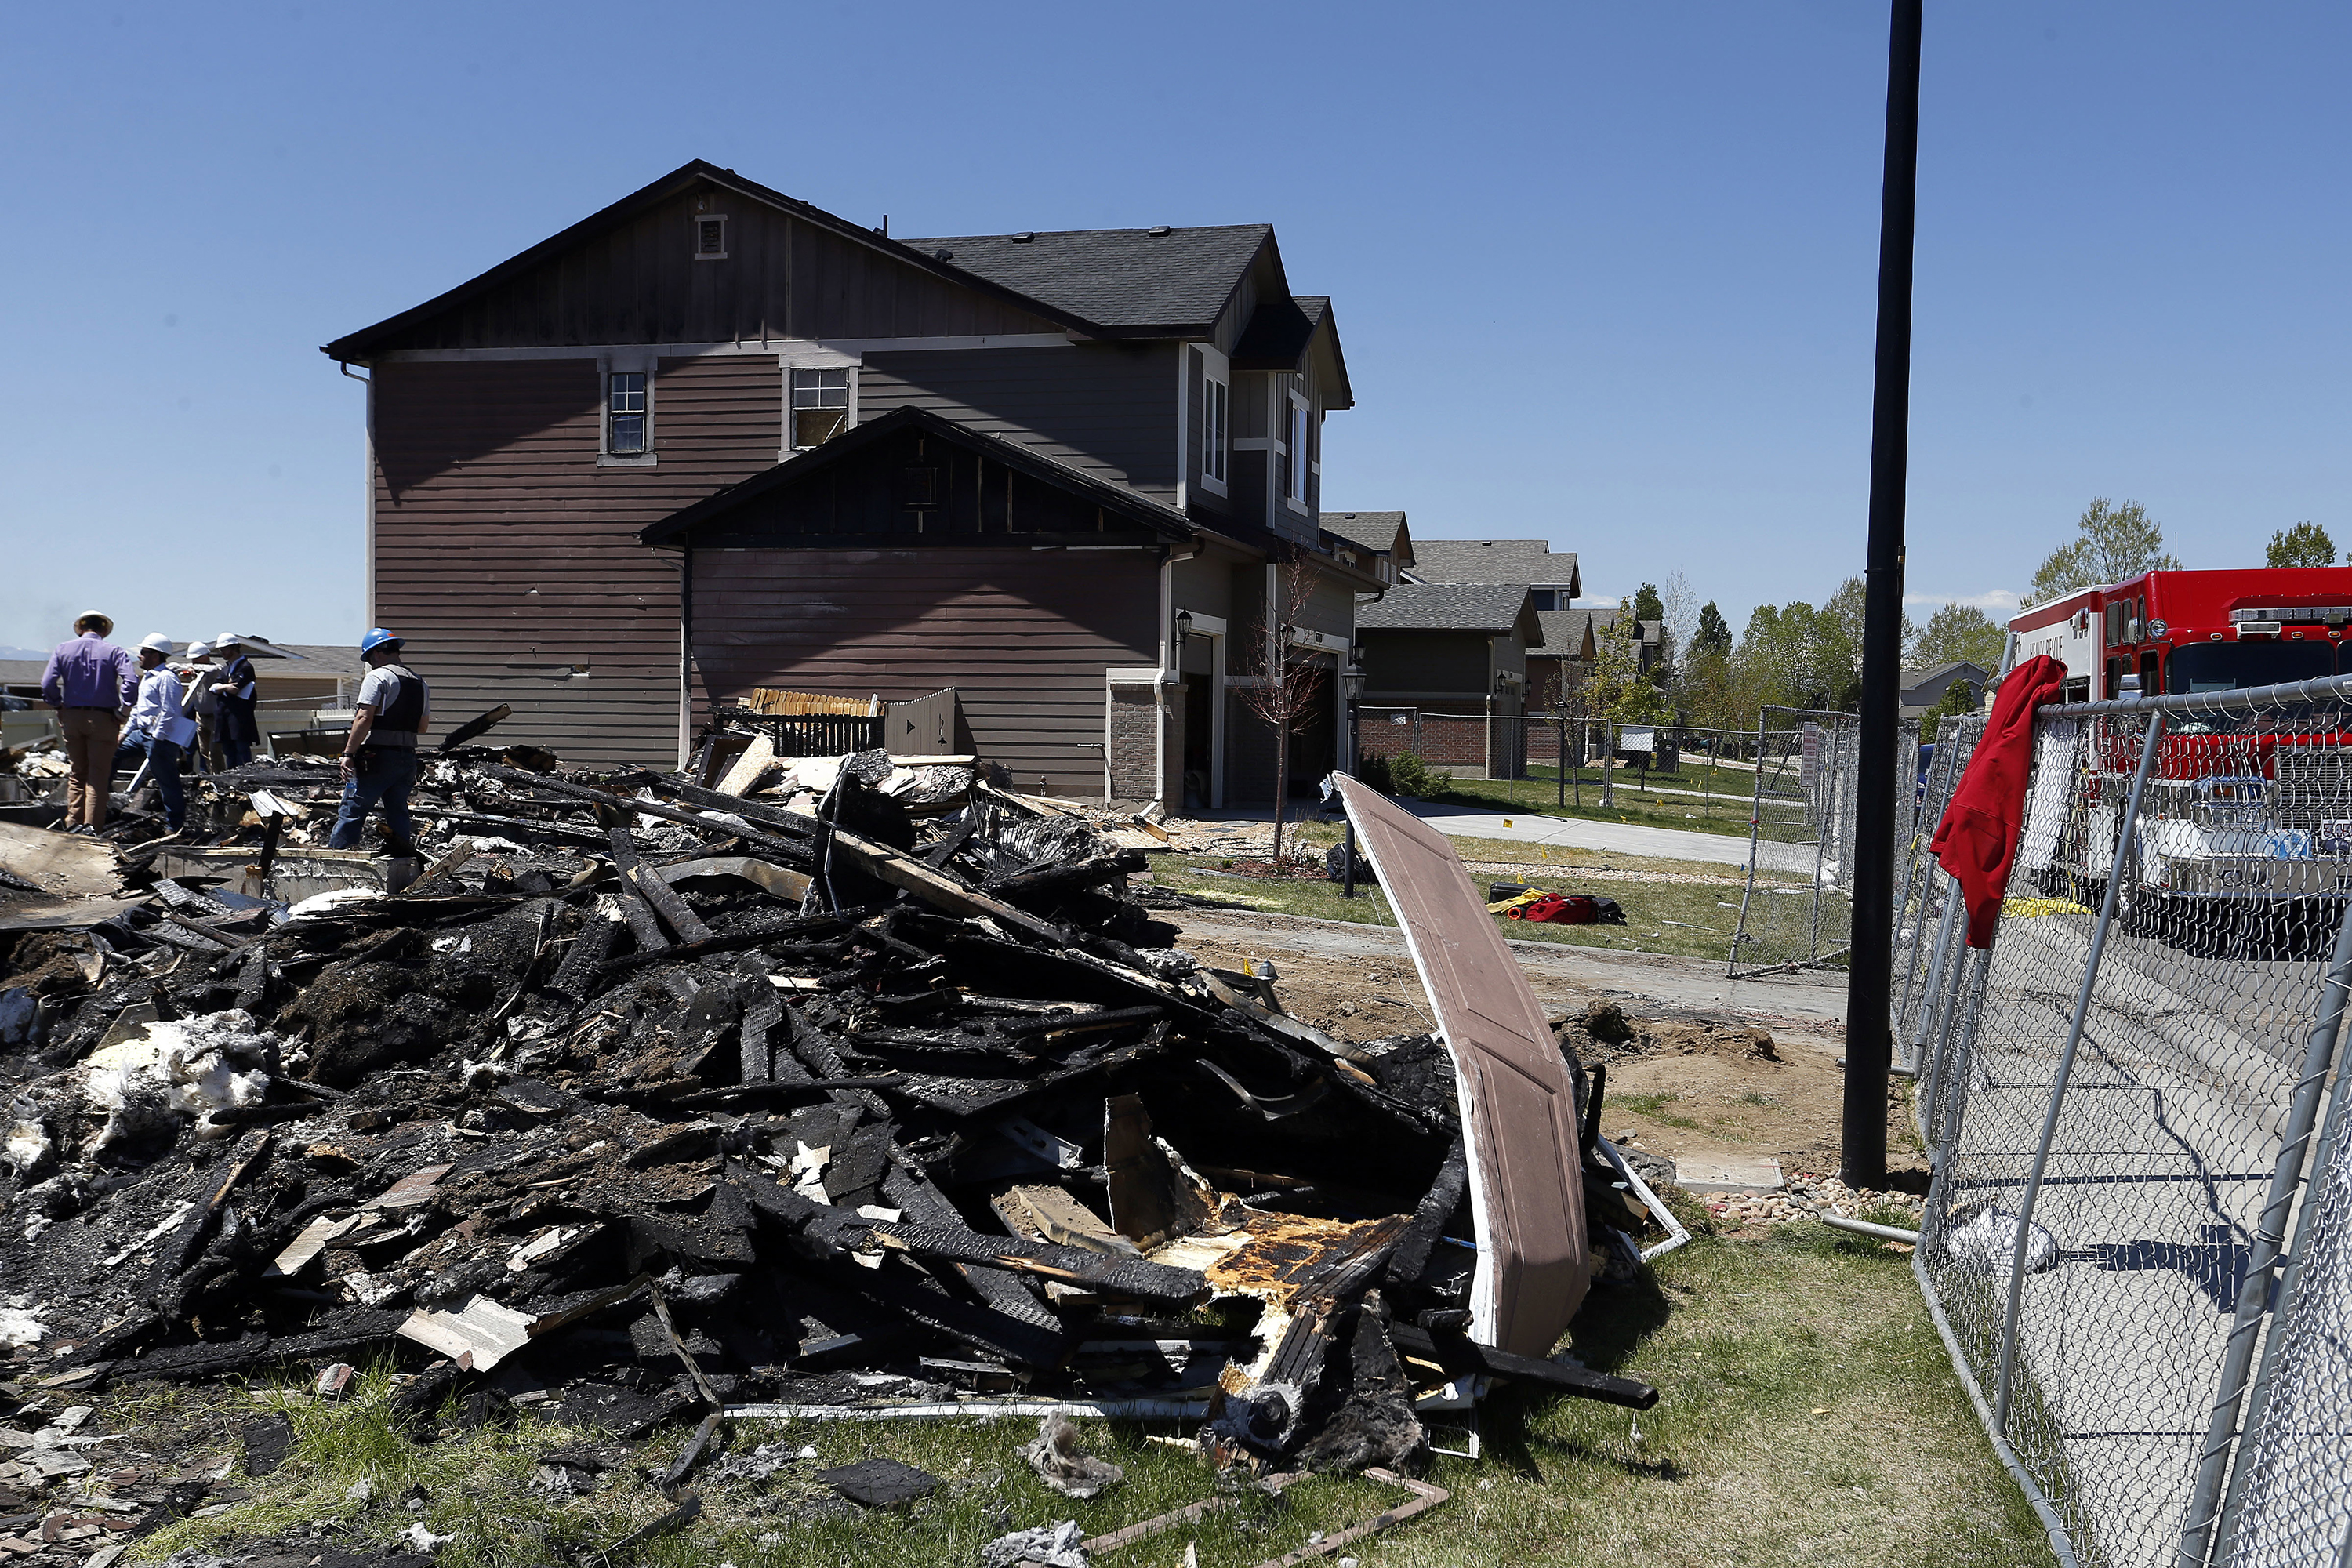 Workers dismantle the charred remains of a home on May 4, 2017 where a gas line leak explosion killed two people inside their home, in Firestone, Colorado.